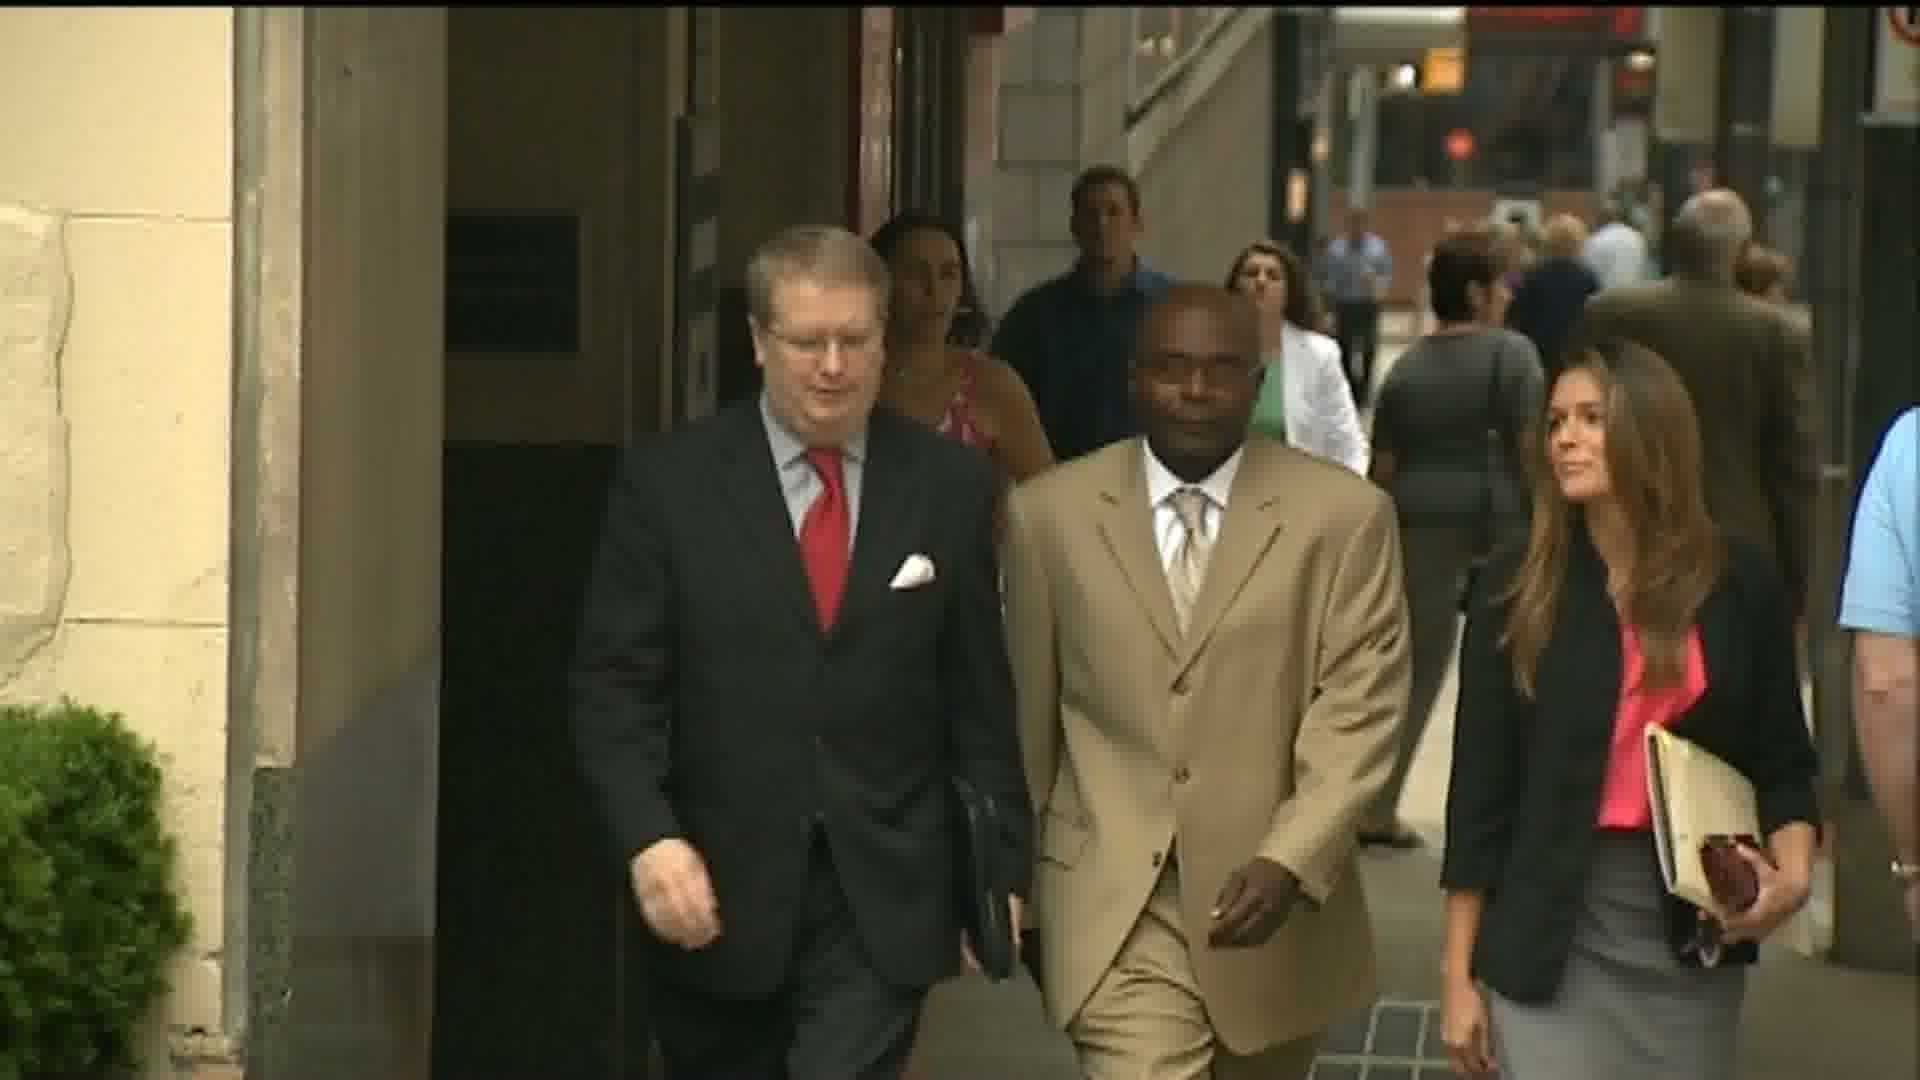 Fred Crawford Jr. with his lawyer.